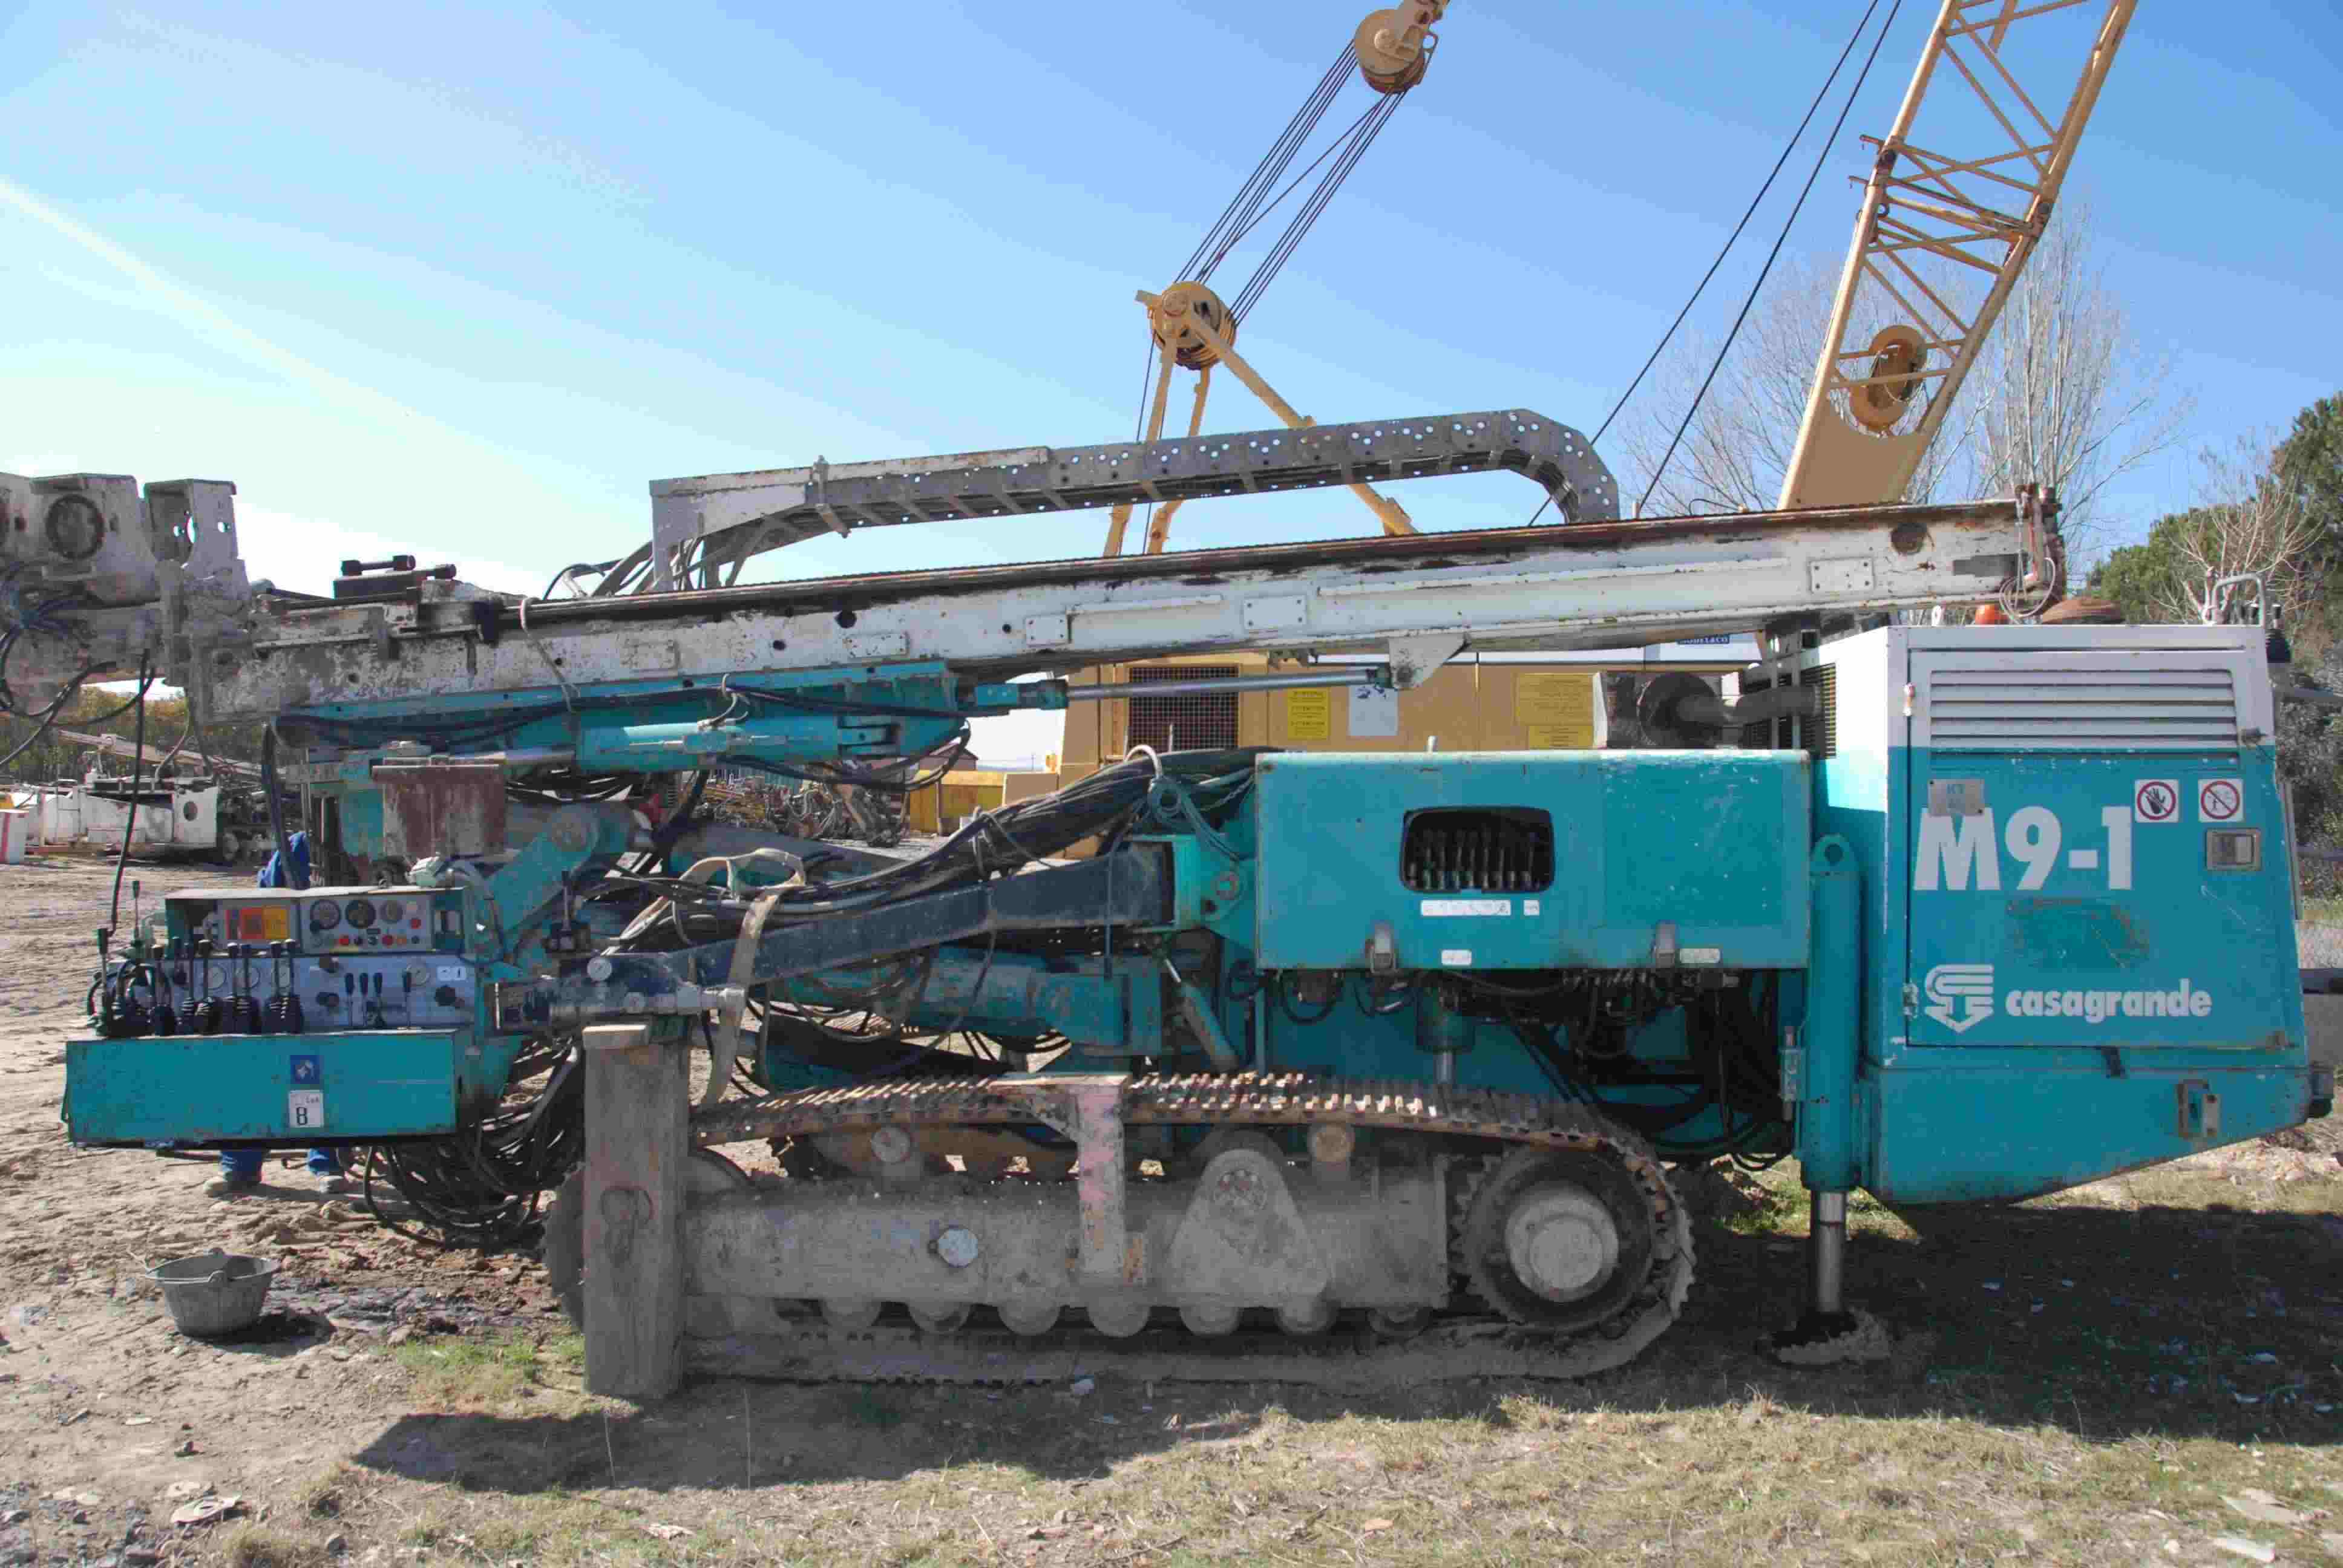 Used CASAGRANDE M9-1 (2001) for rent and sale. used anchoring and micropiling machines for rent or sale